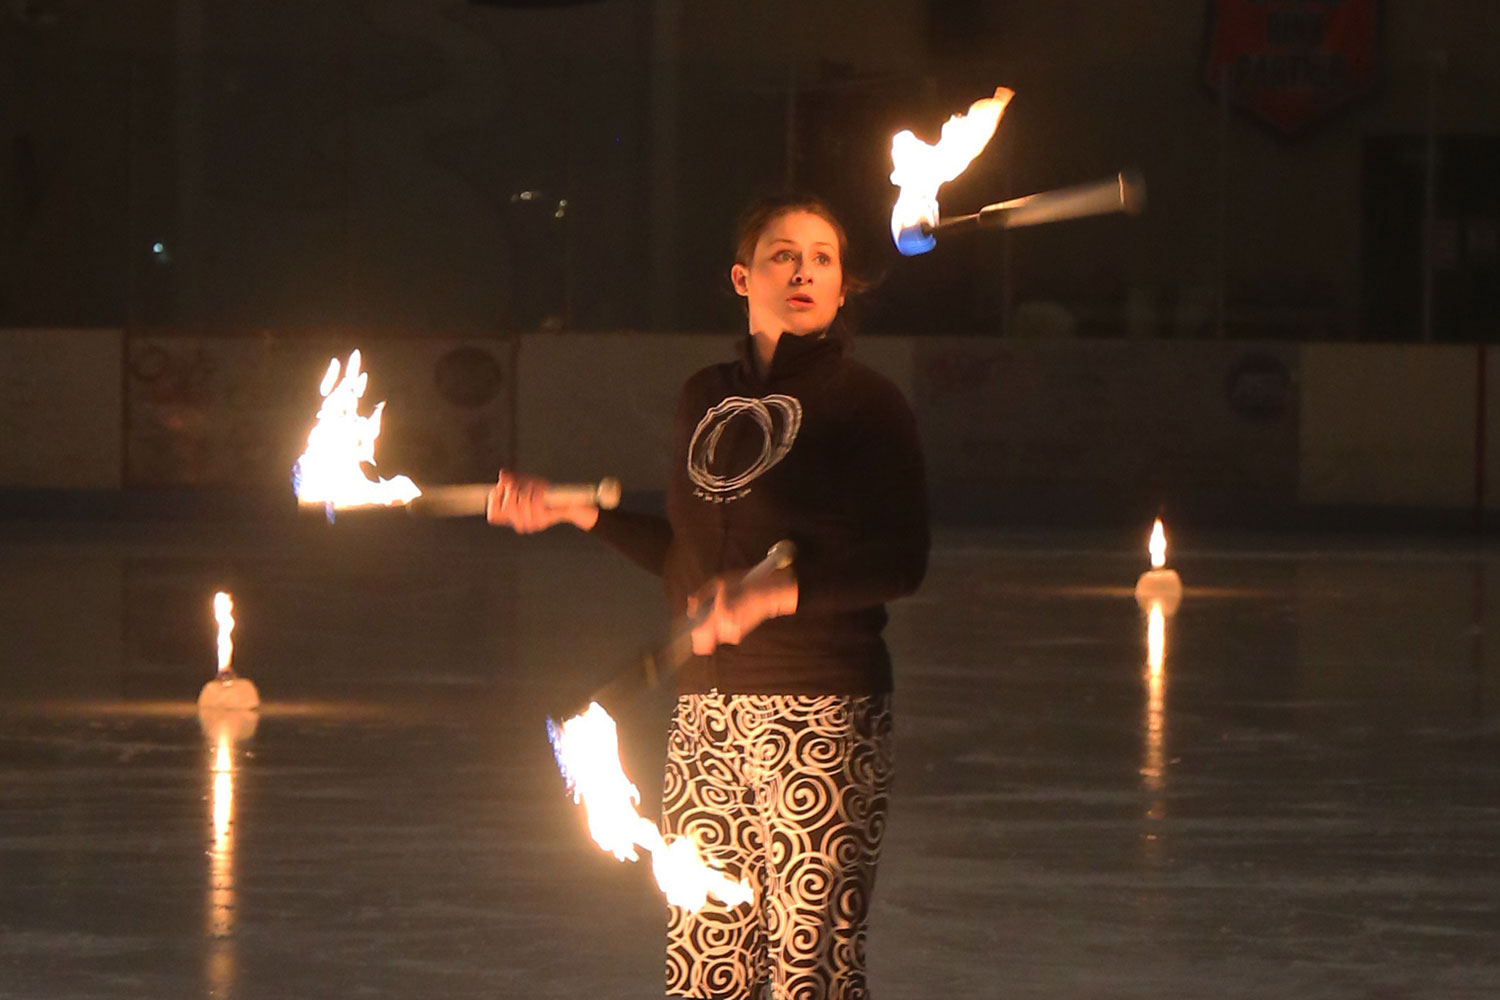 A woman juggling burning torches standing on an ice rink